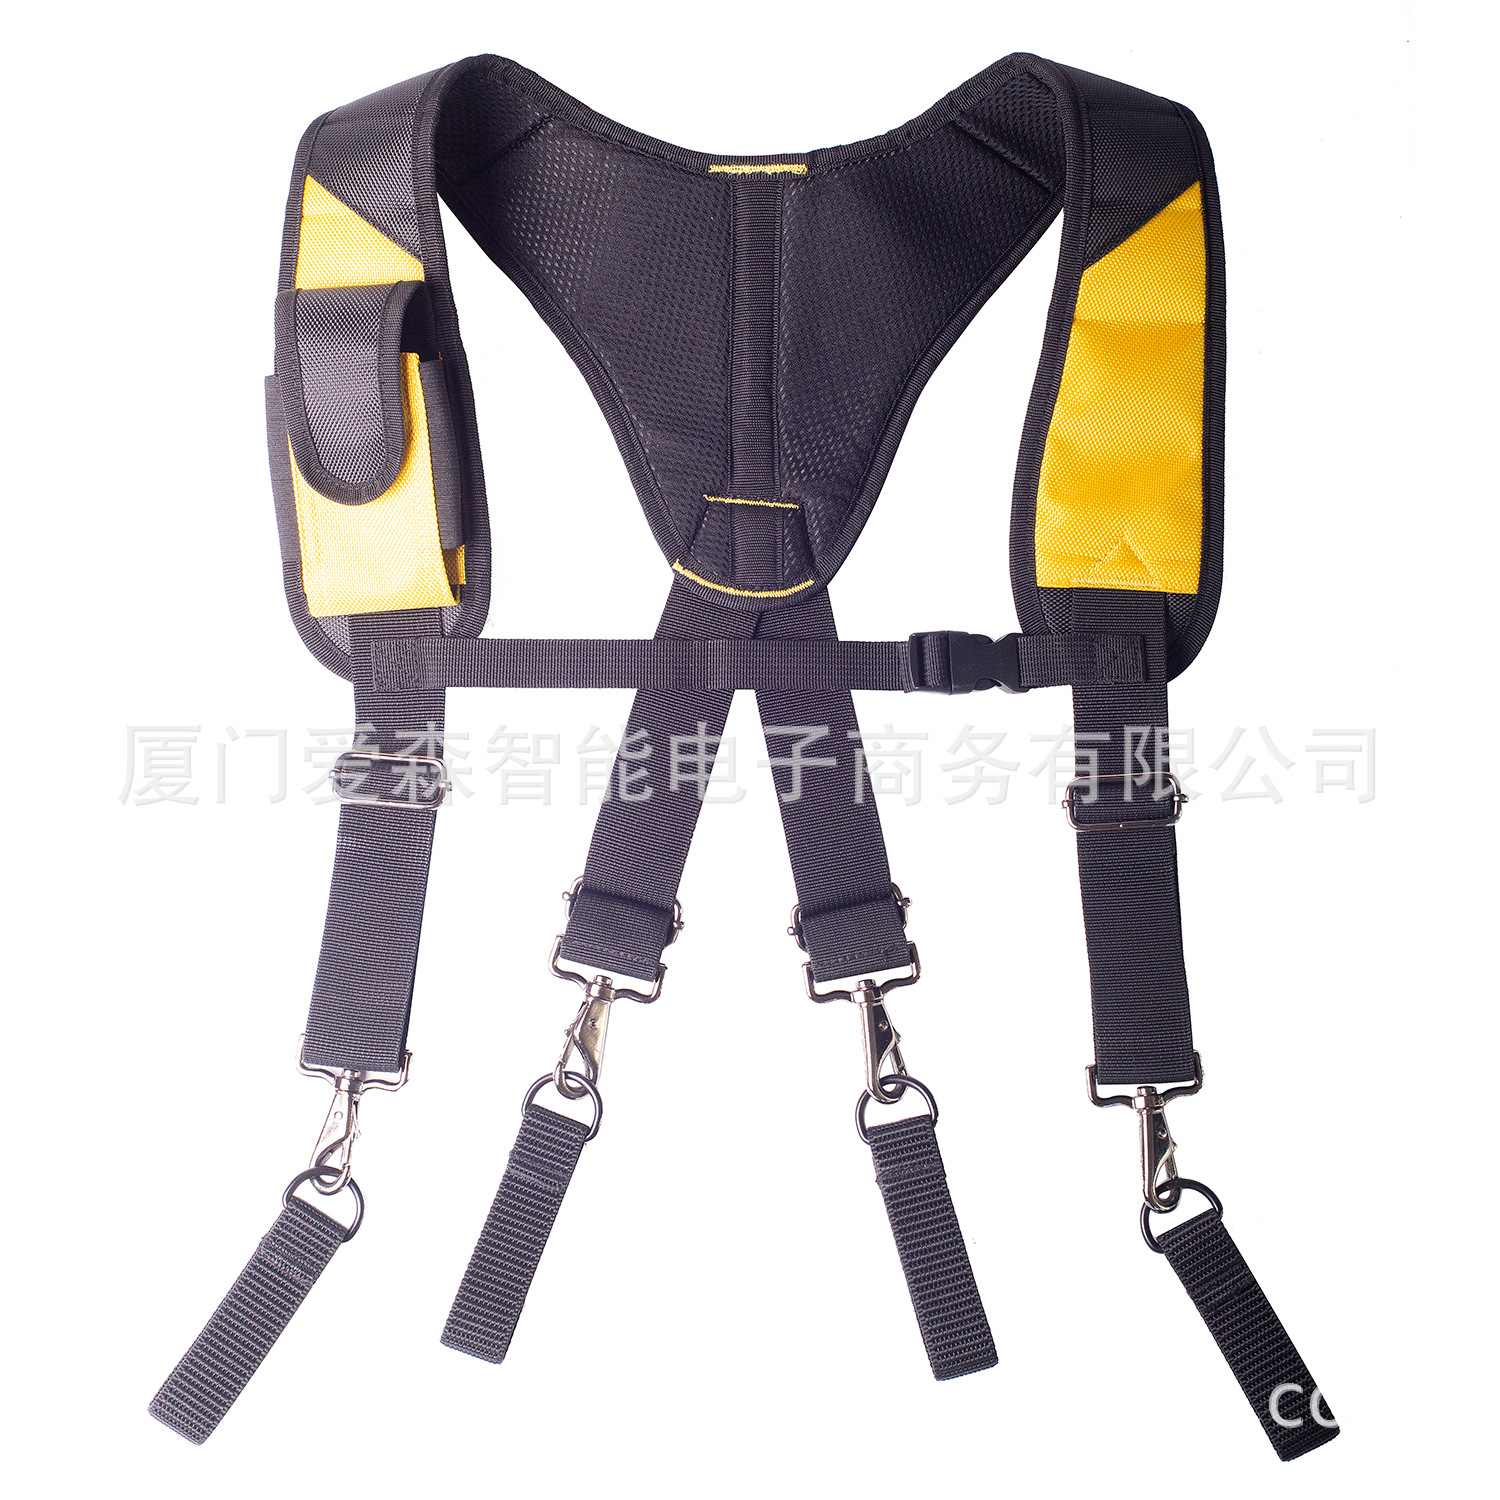 Men's Work Clothes Suspenders Straps Multi-Function Reduce Heavy Weight Tooling Strap Type X Tool Suspender For Hanging Tool Bag